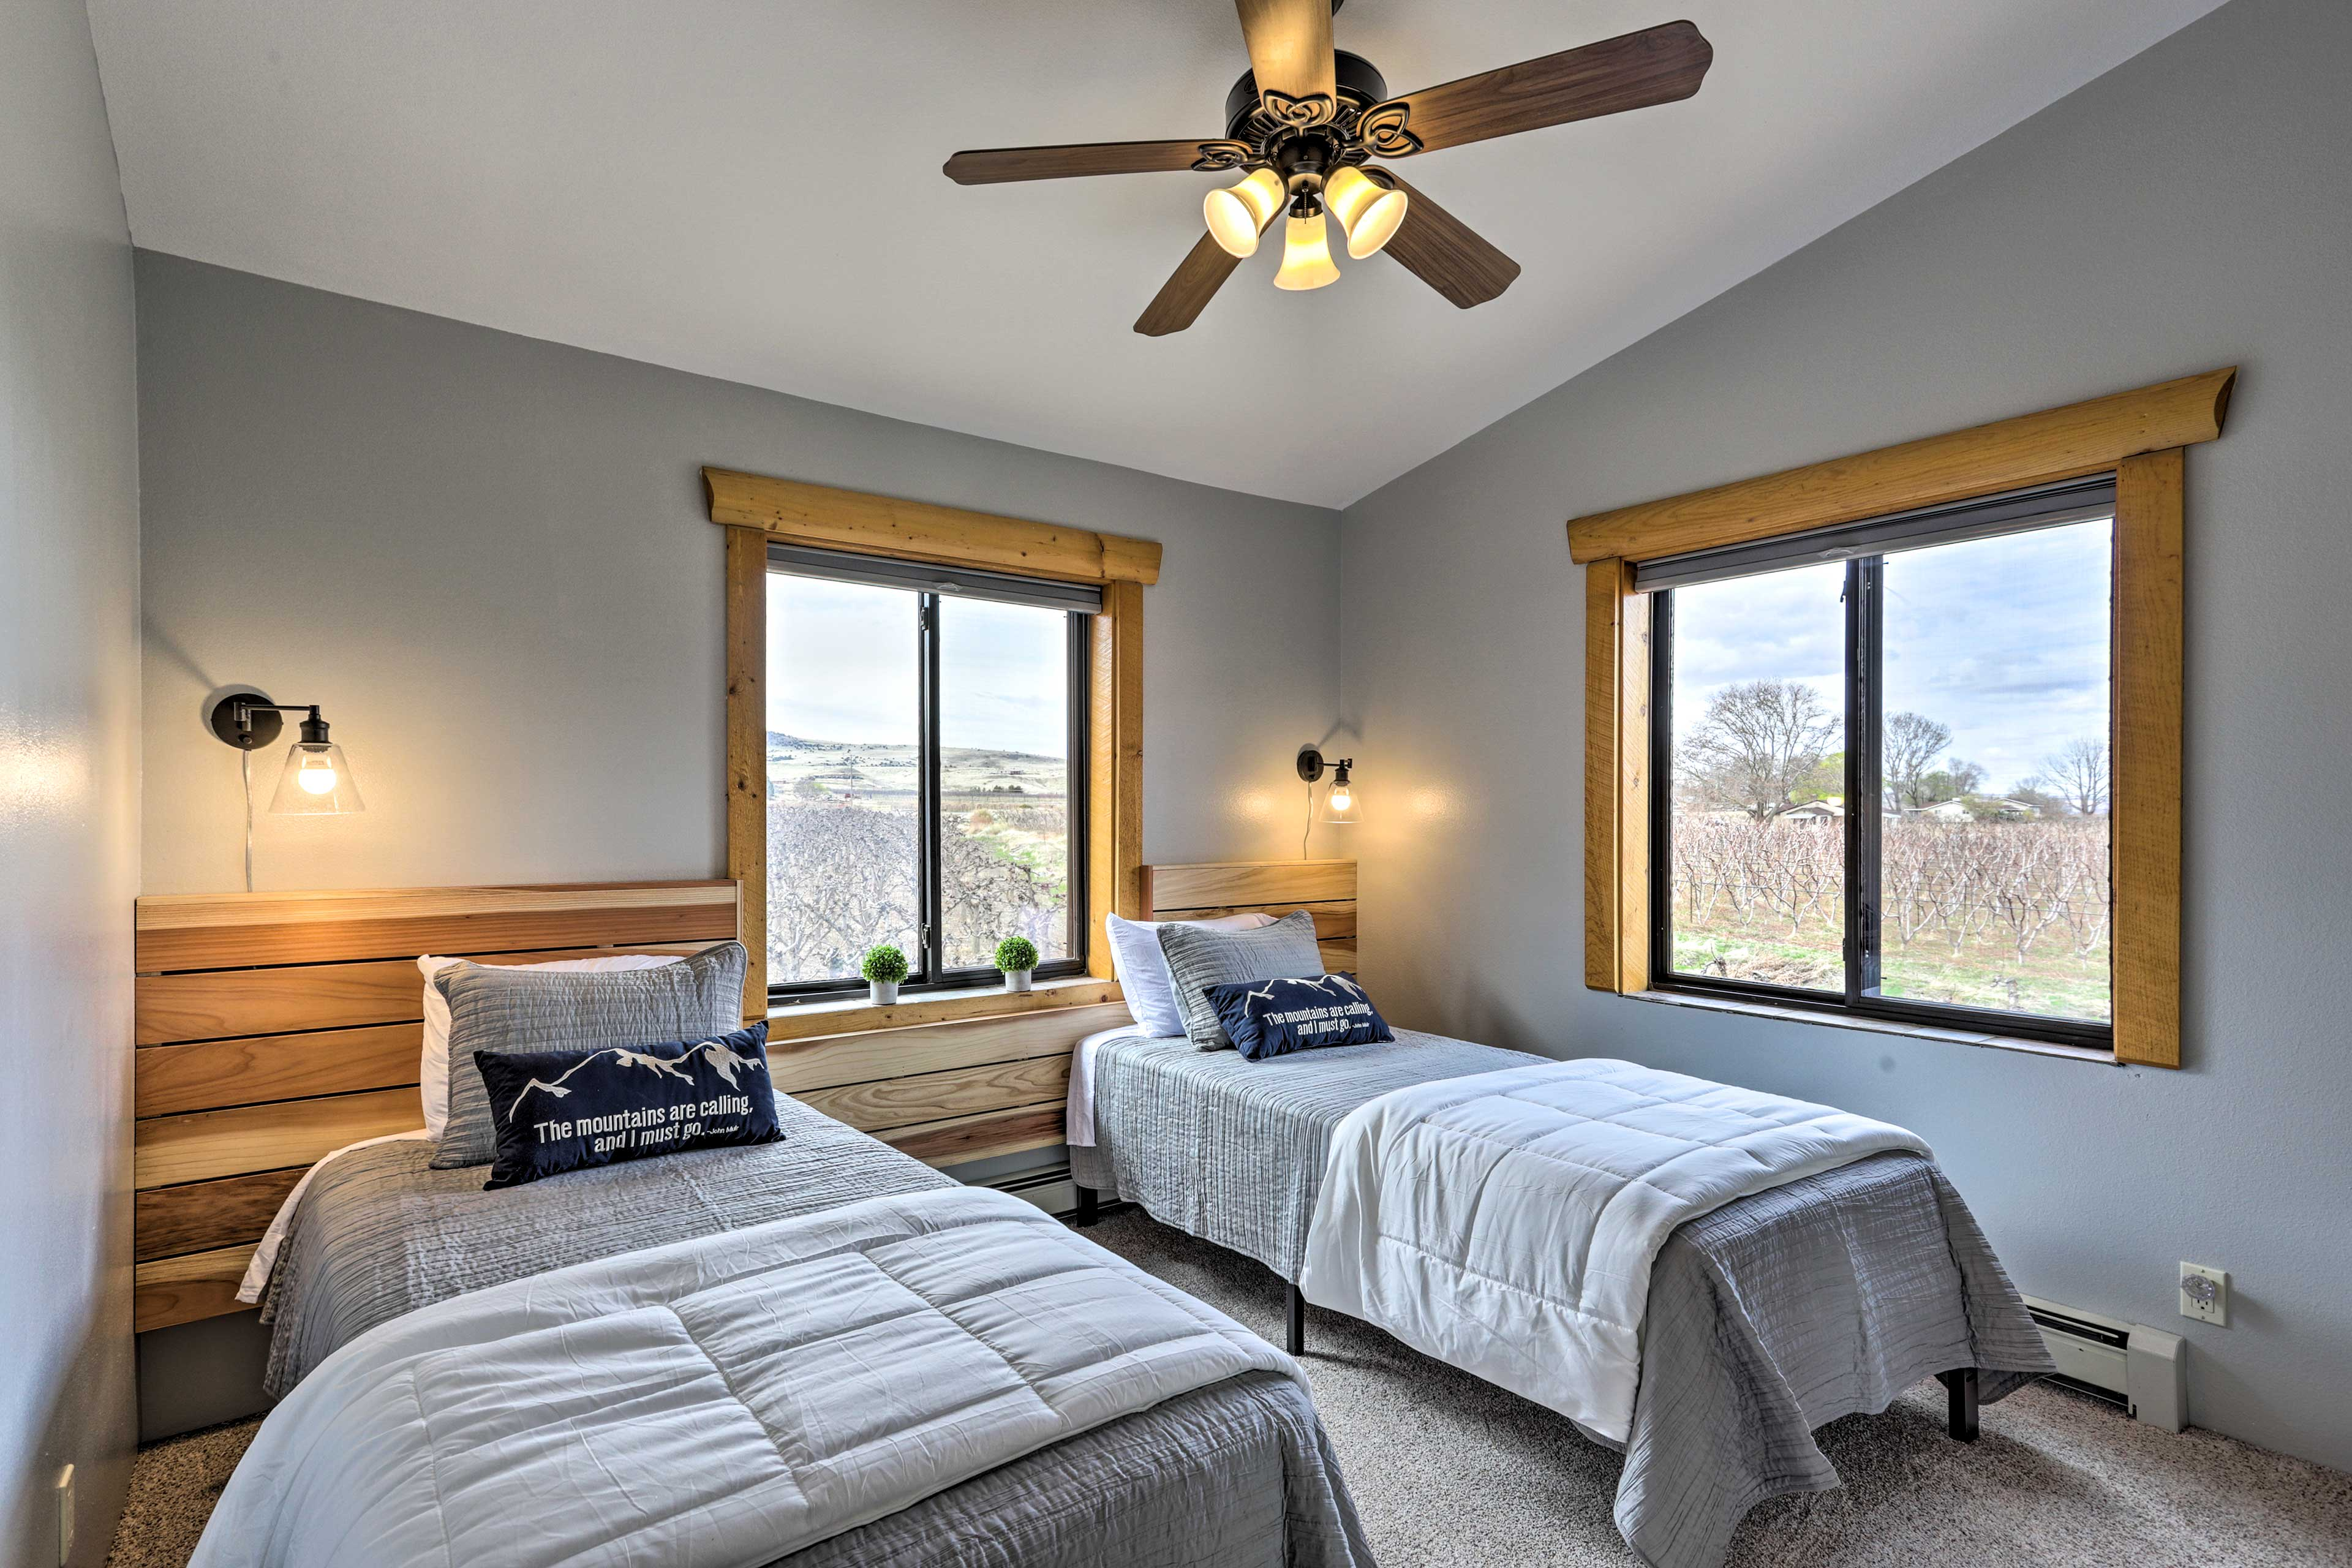 The kids will love the twin bed room.